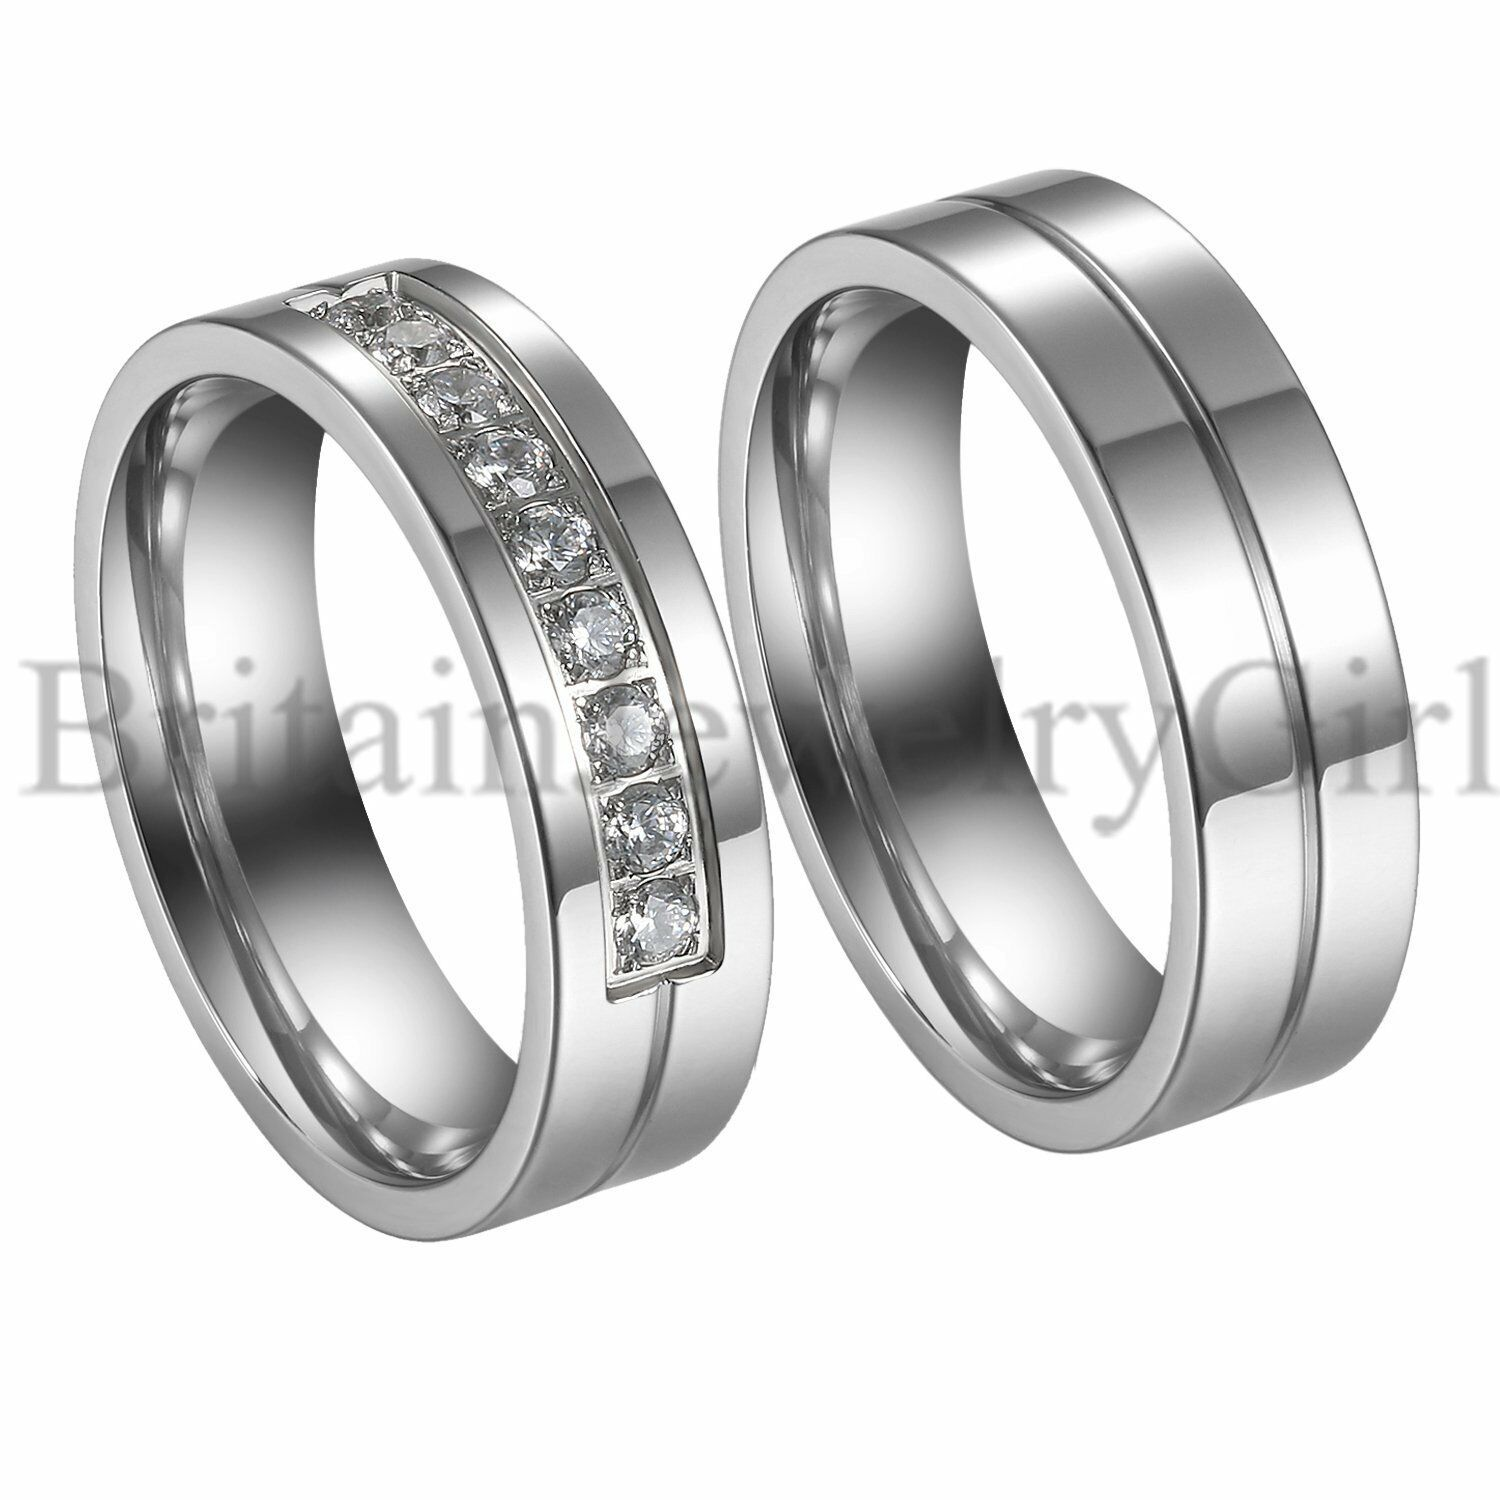 Silicone Wedding Engagement Ring Men Women Rubber Band Gym Sport Flexible Silver Wedding Rin Matching Promise Rings Couples Ring Set Womens Wedding Ring Sets